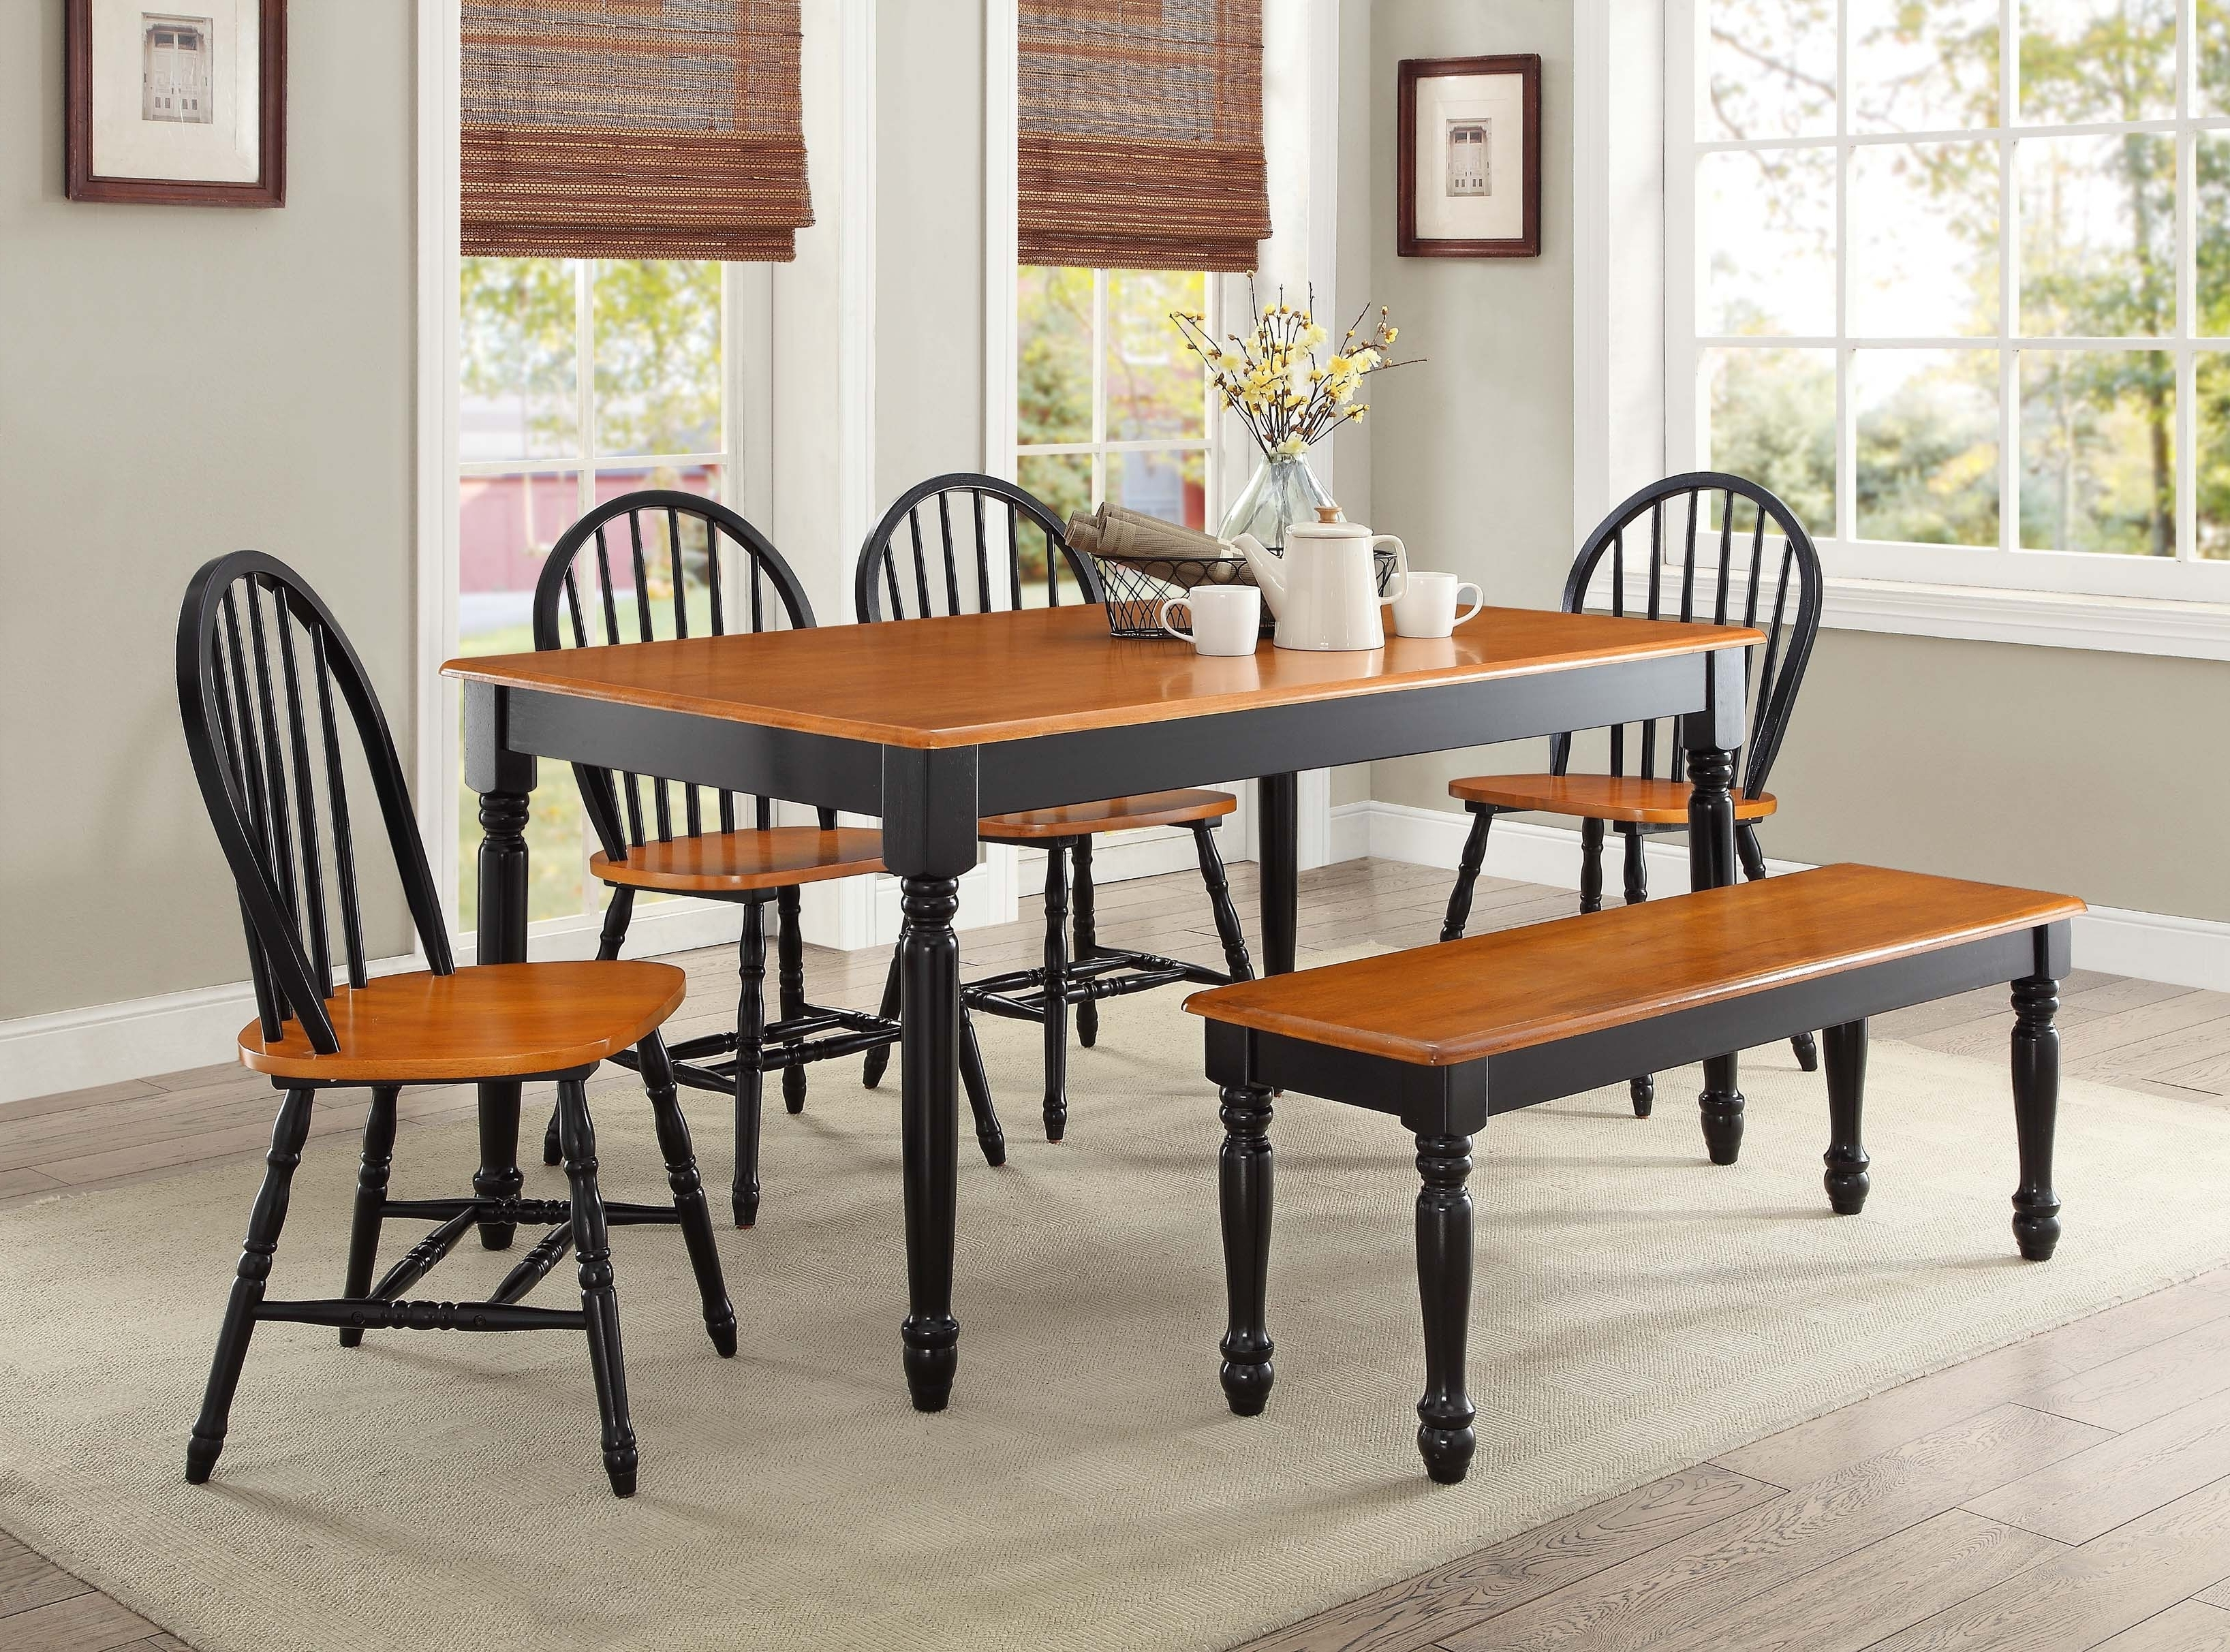 Round 6 Person Dining Tables With Regard To Most Popular 30 Lovely 6 Person Dining Table Size – Welovedandelion (View 21 of 25)